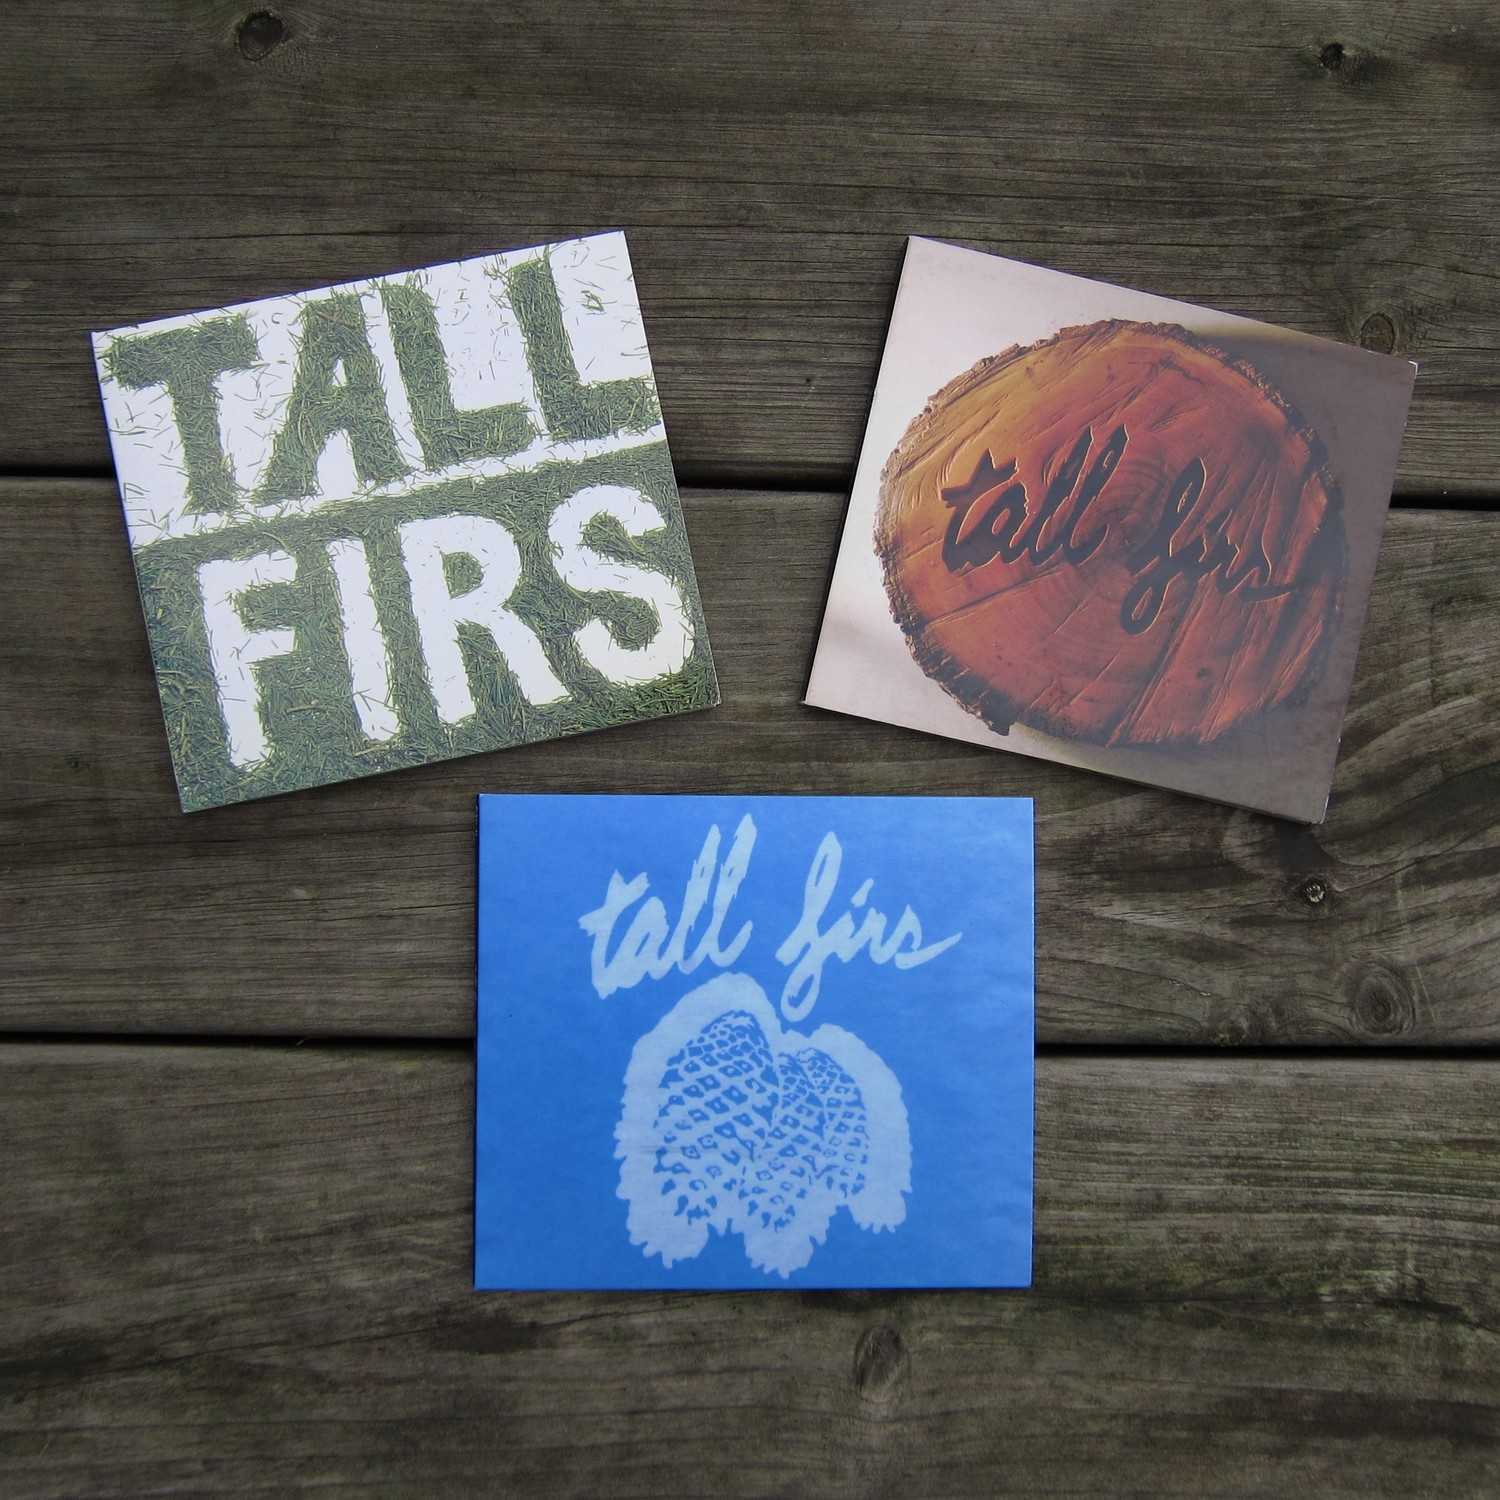 TALL FIRS 3x CD multi-buy offer!